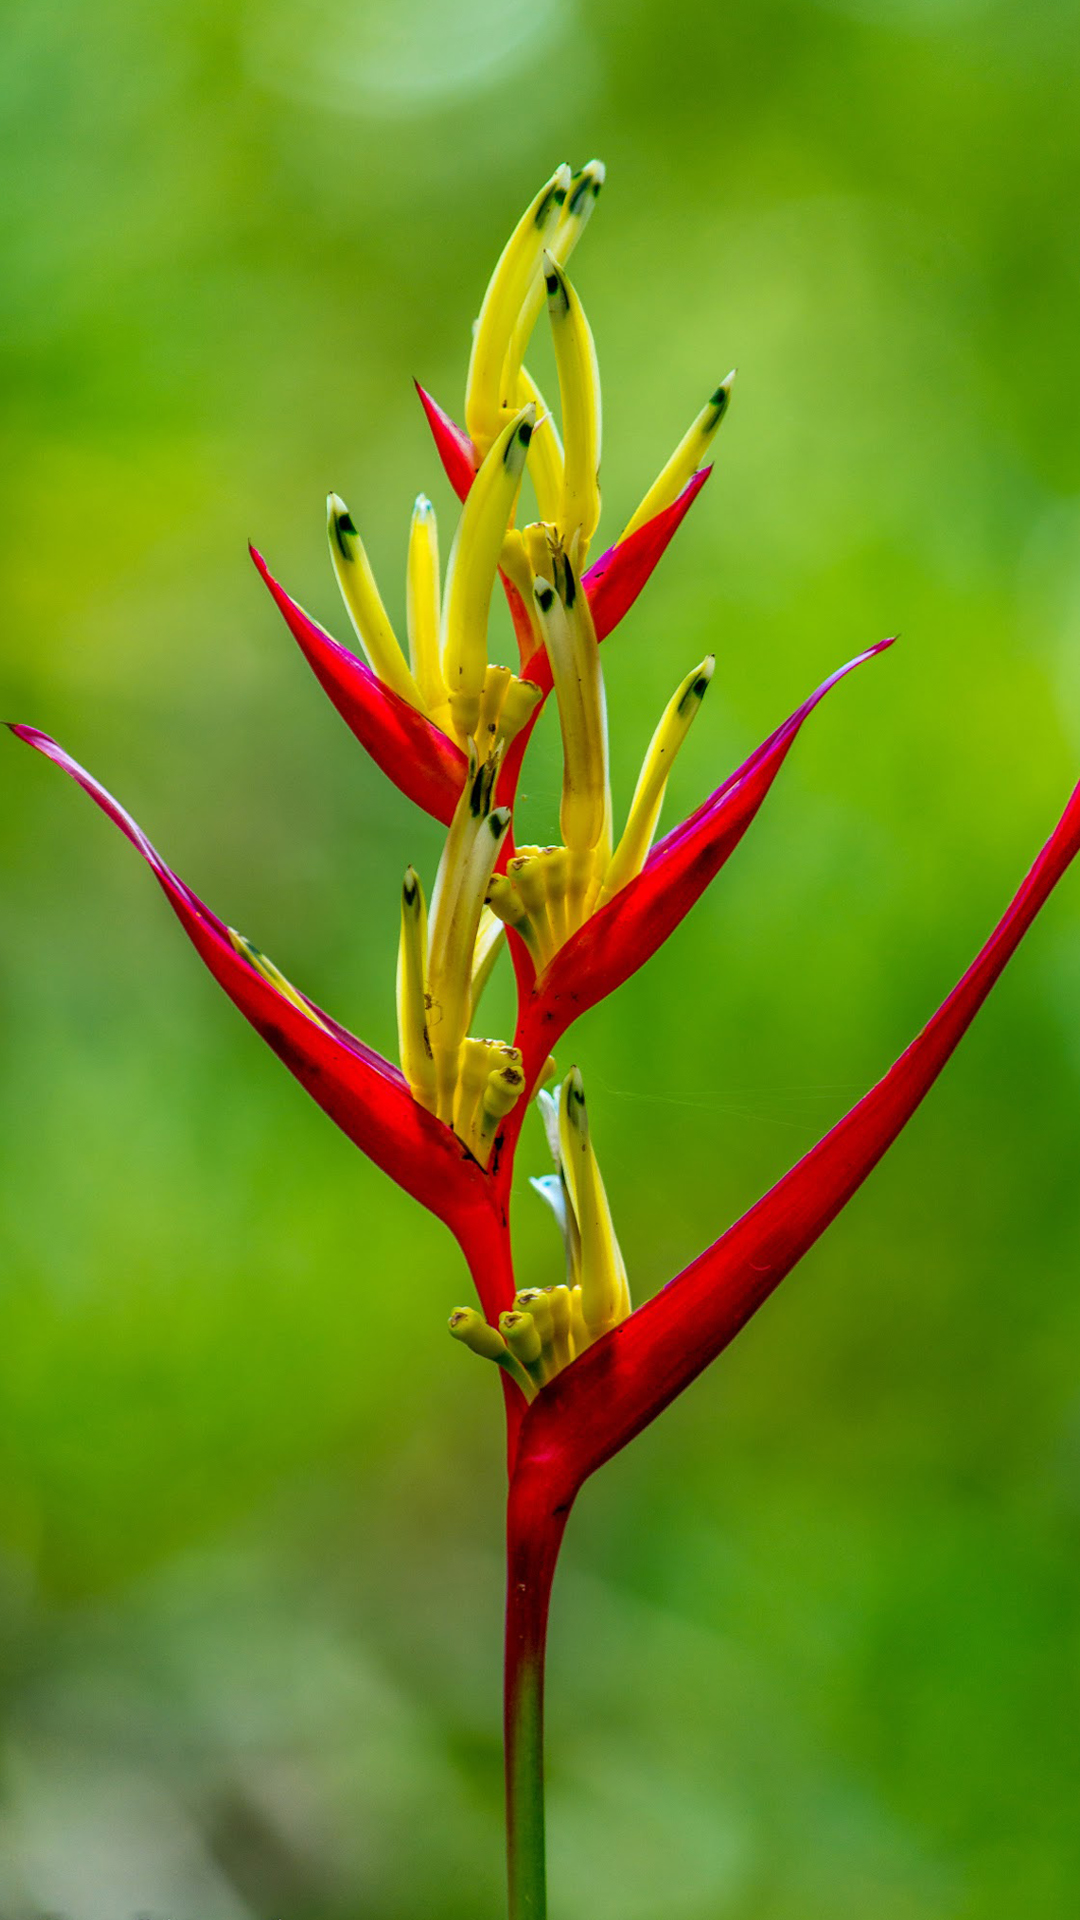 Hd wallpaper for android 5 5 inch -  Free Download Wallpaper For 5 Inch Screen Android Phones With Heliconia Flower